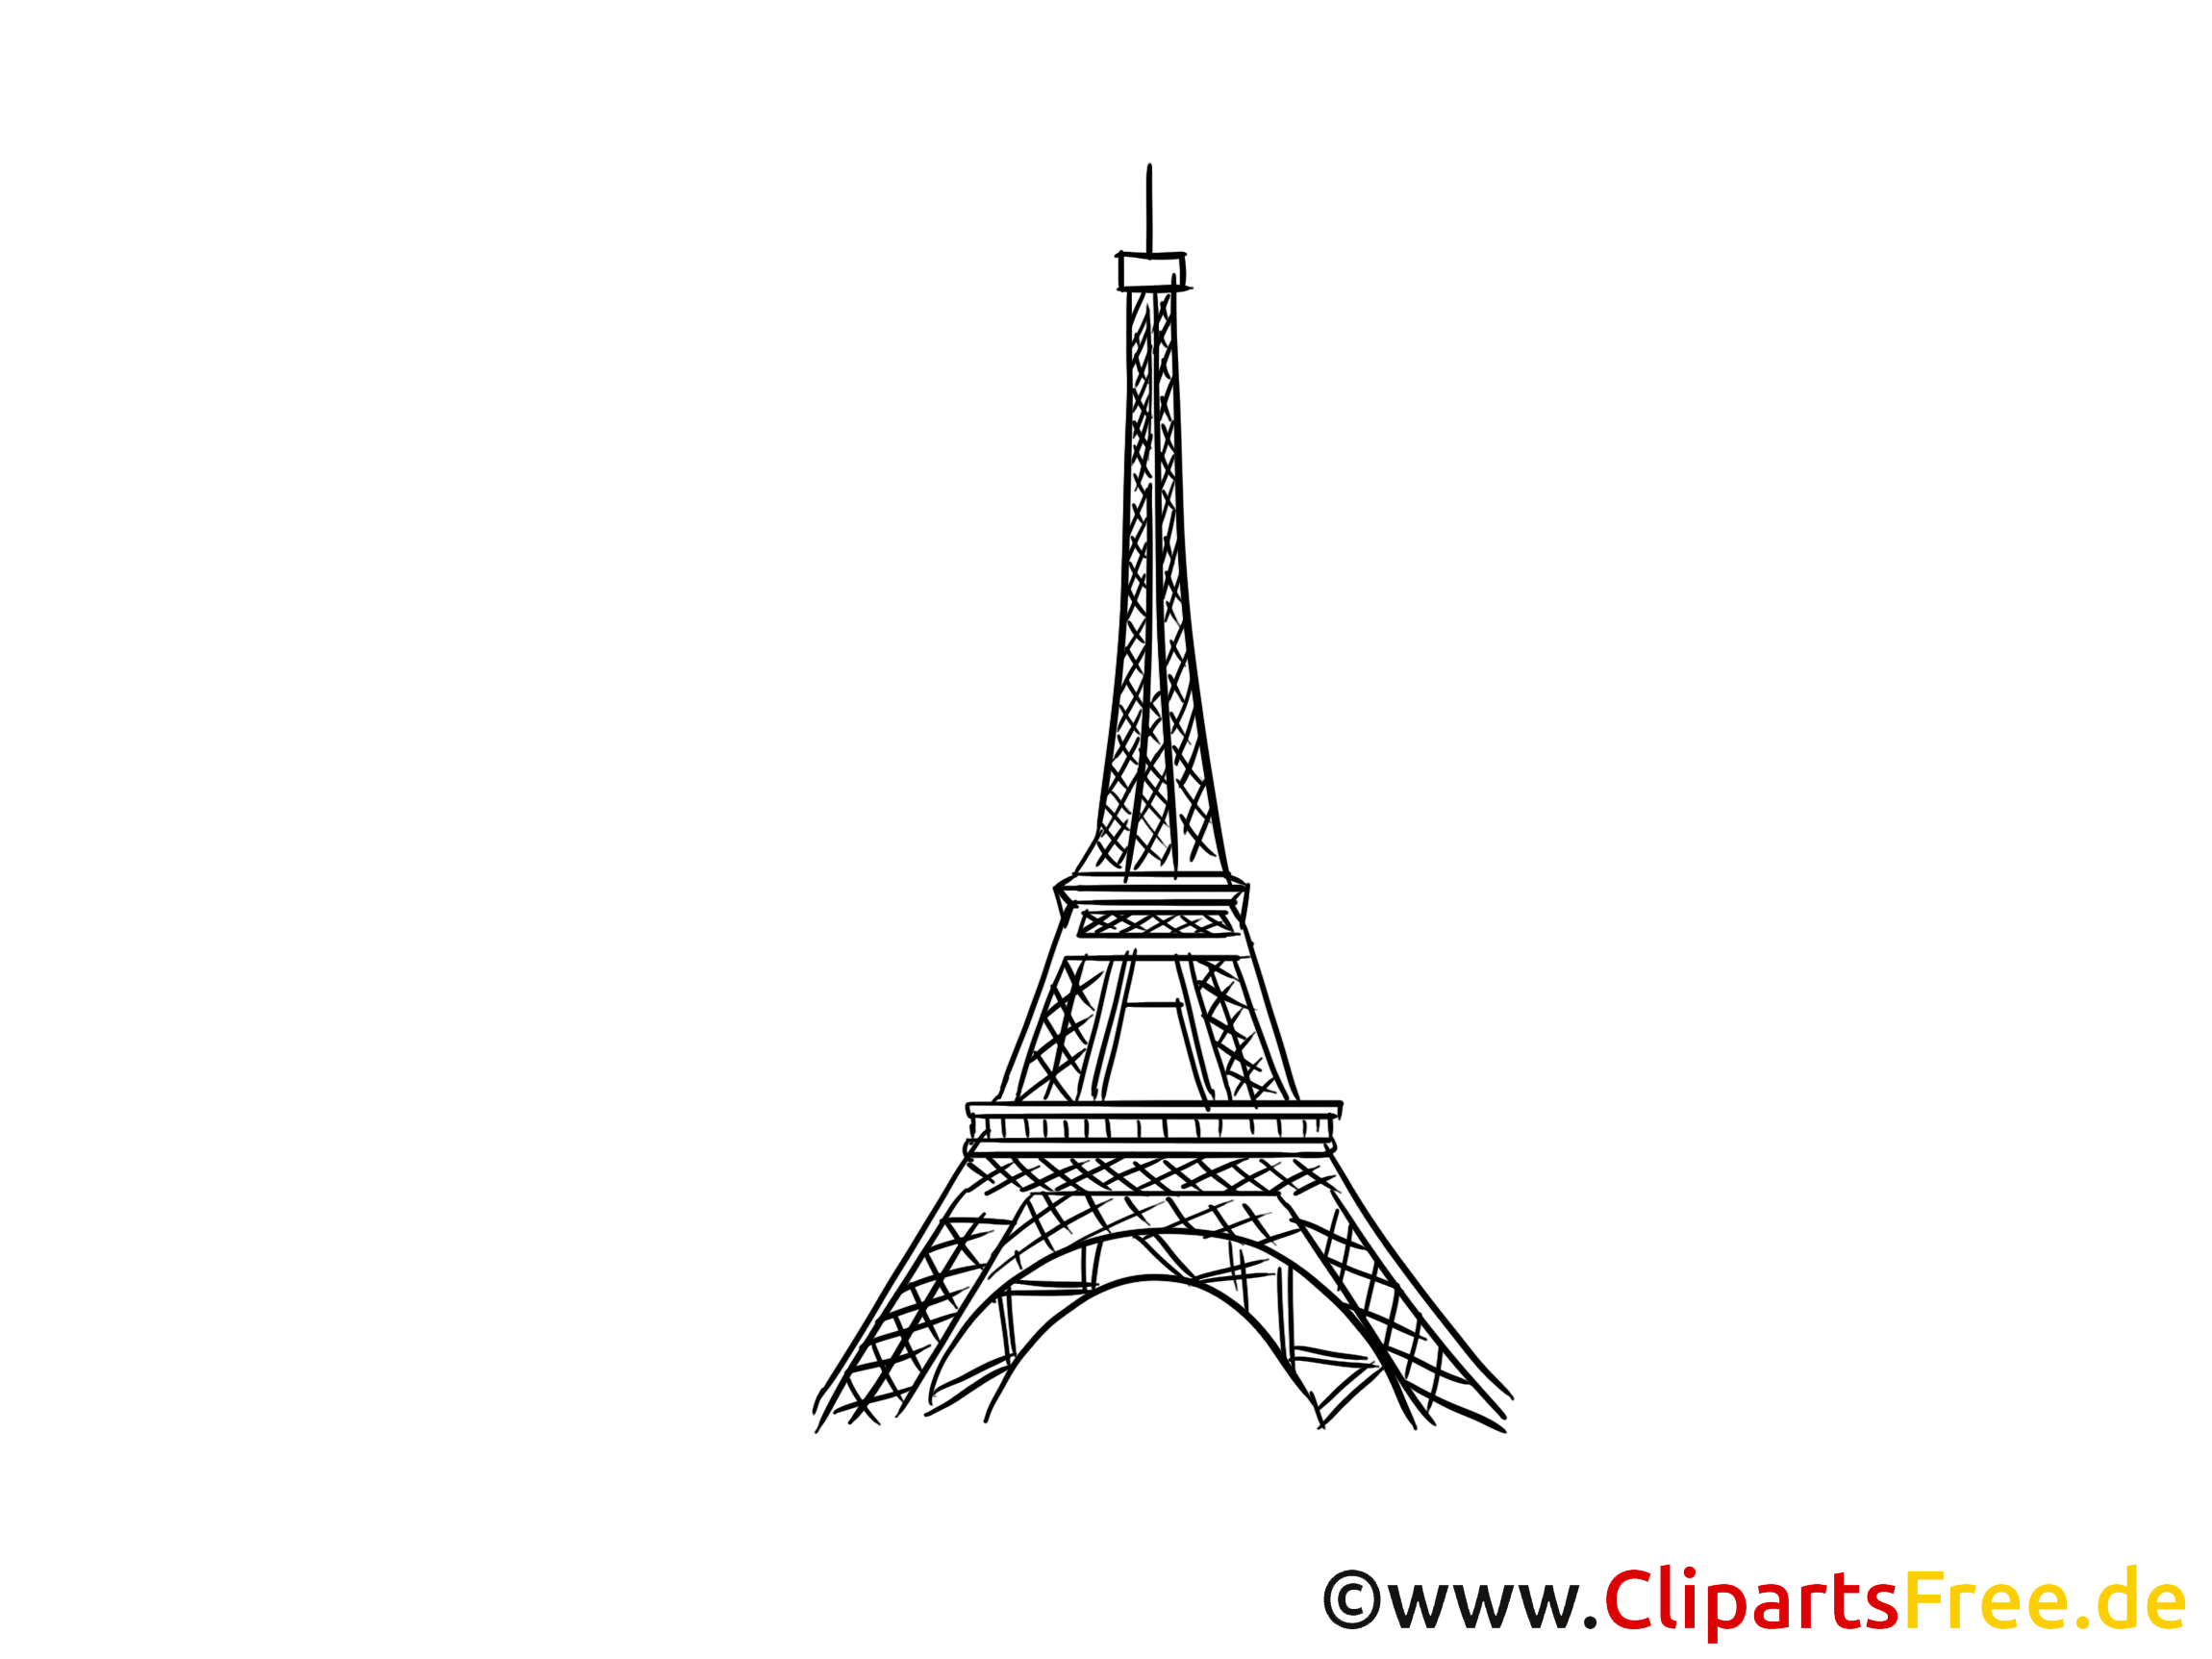 eifelturm in paris bild zeichnung clipart gratis. Black Bedroom Furniture Sets. Home Design Ideas